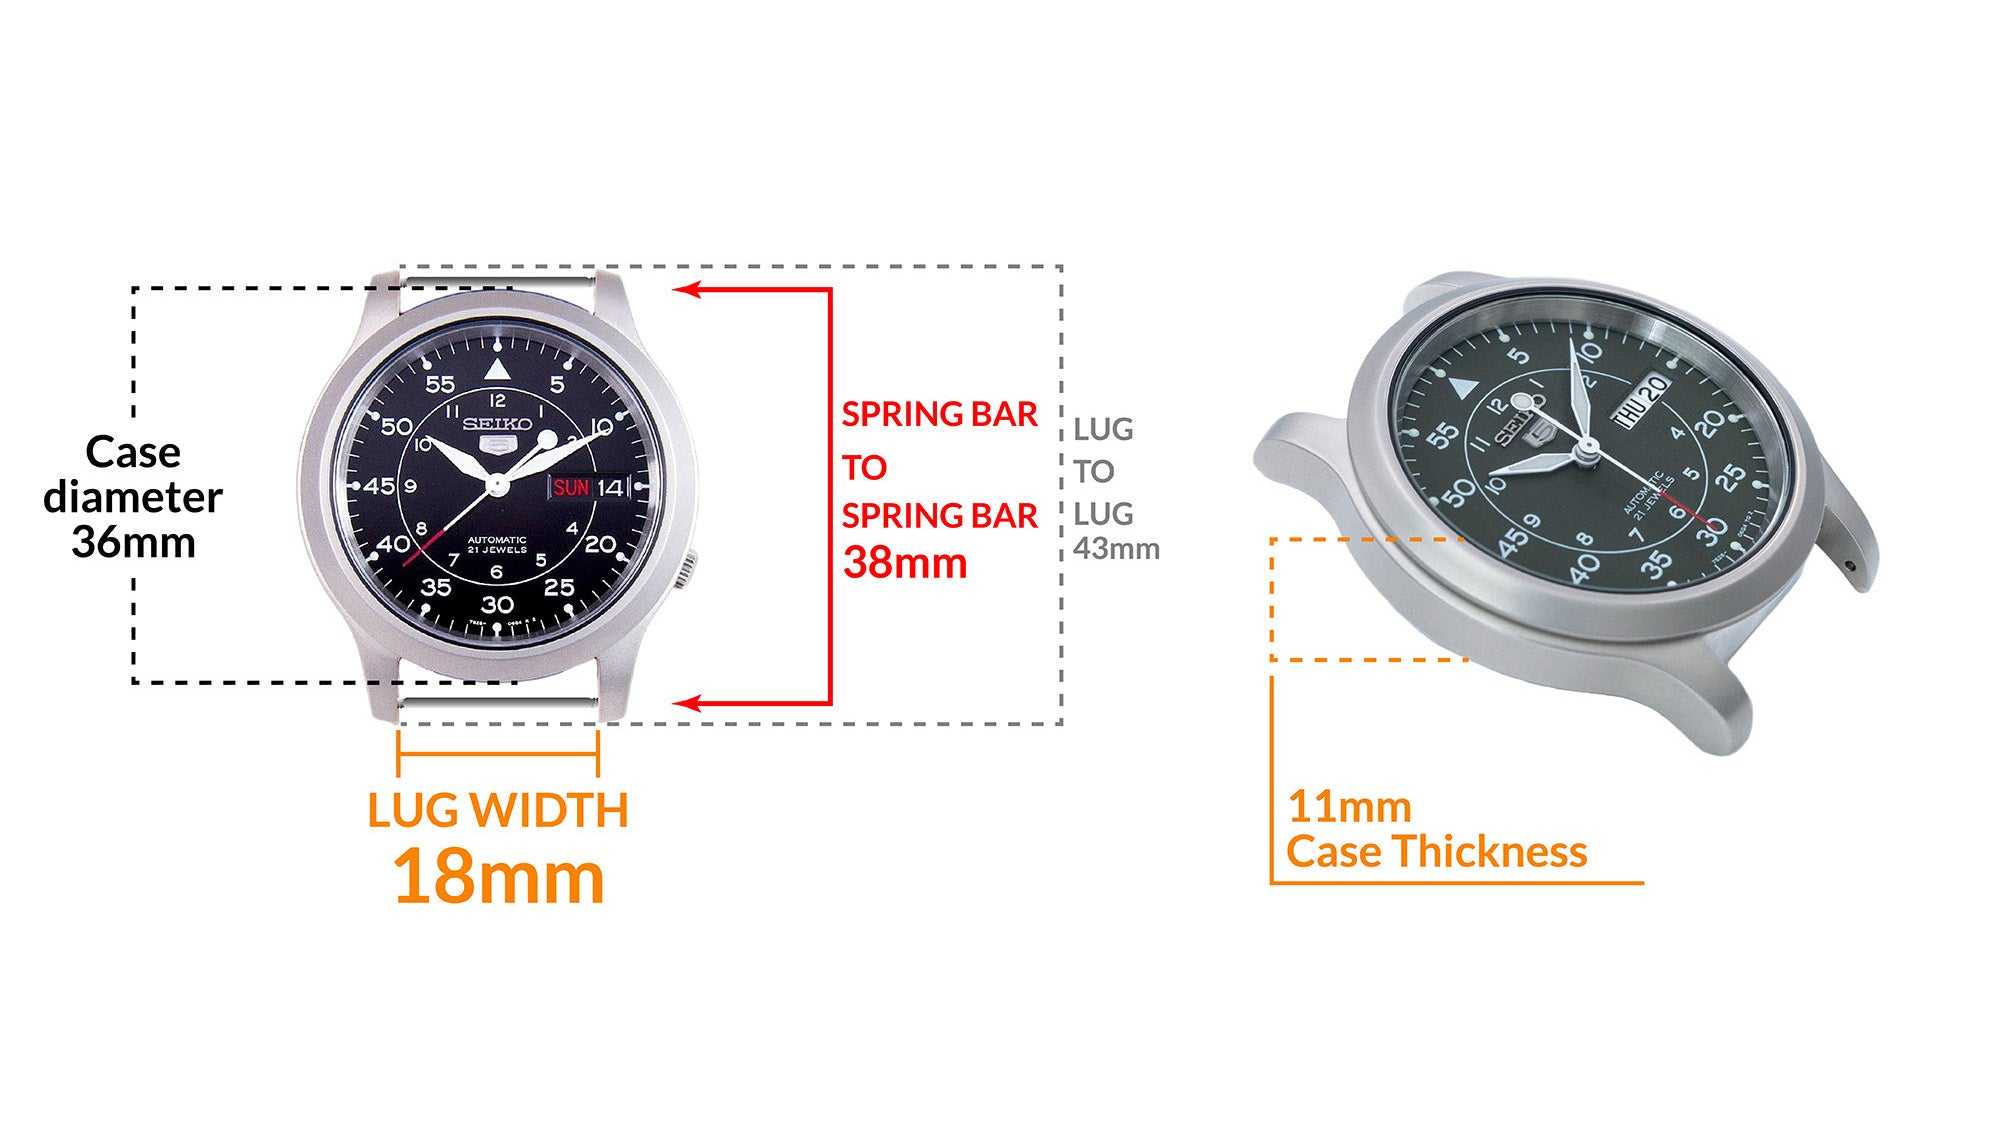 Seiko 5 Sports automatic SNK809 - Details Seiko watch size, Lug width and case dimensions